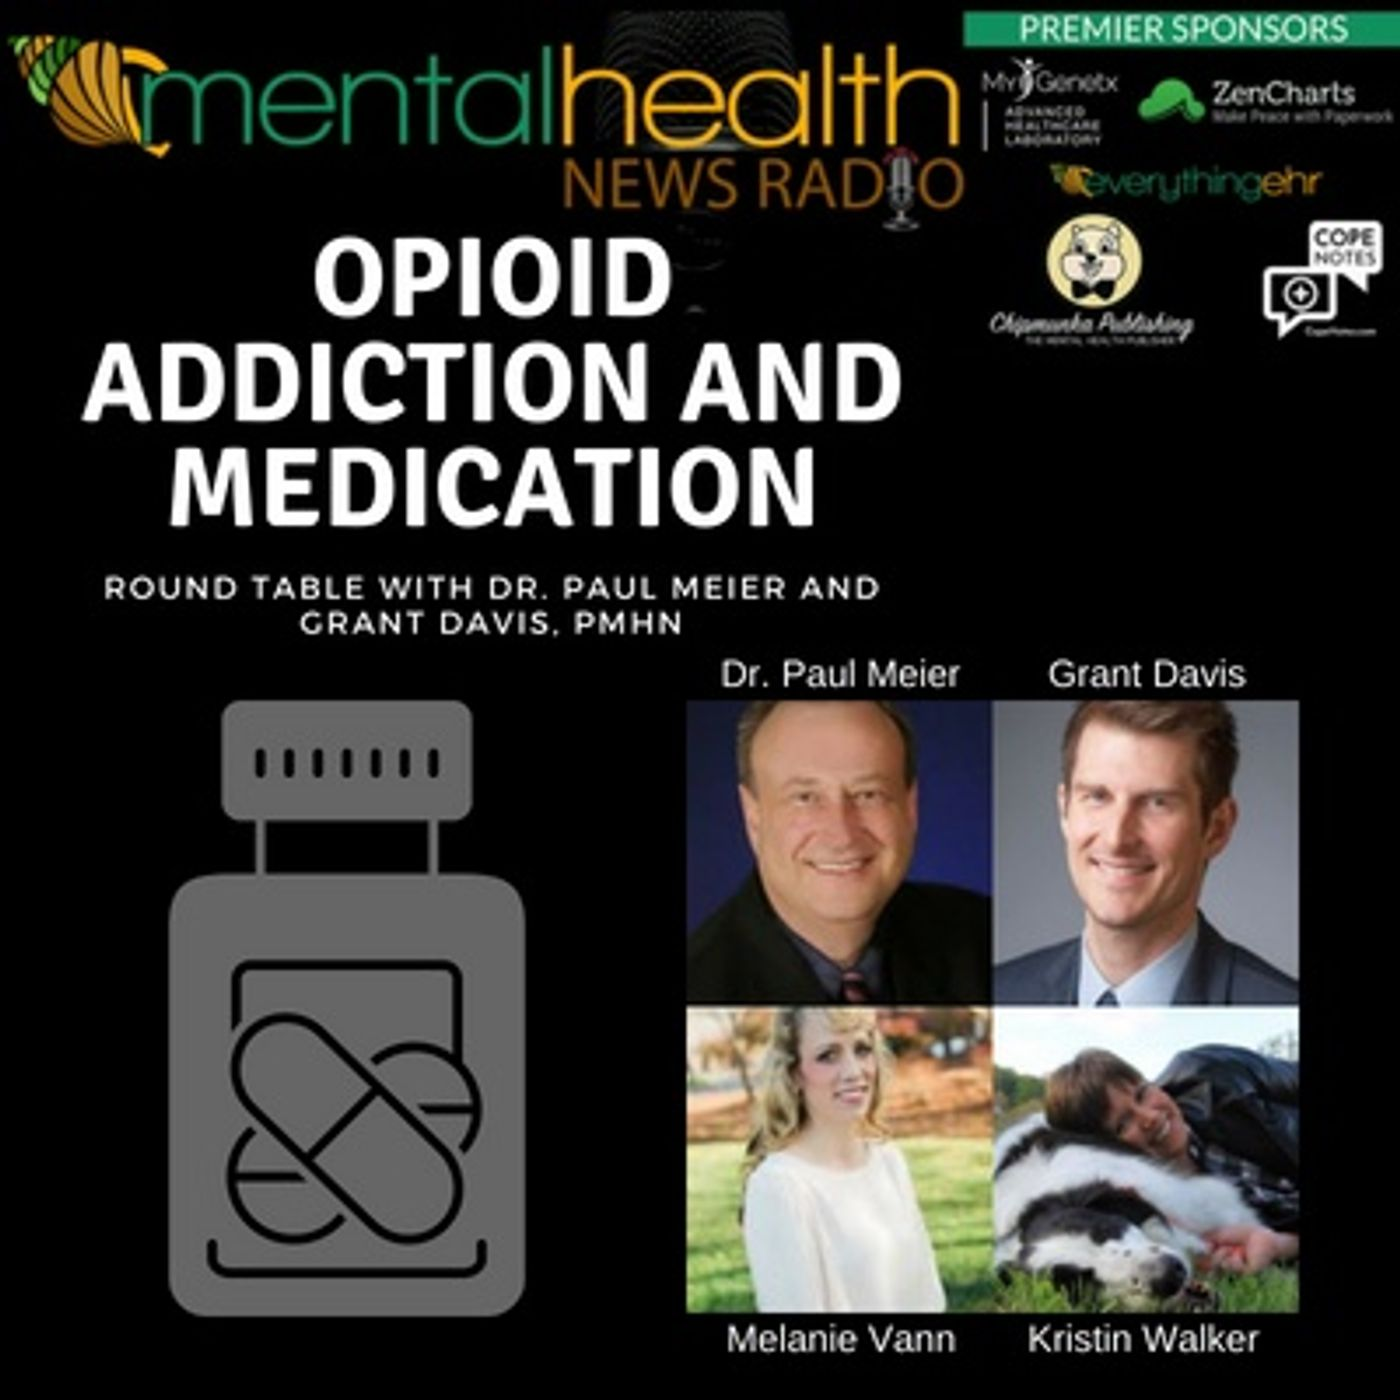 Mental Health News Radio - Round Table with Dr. Paul Meier: Opioid Addiction and Medication